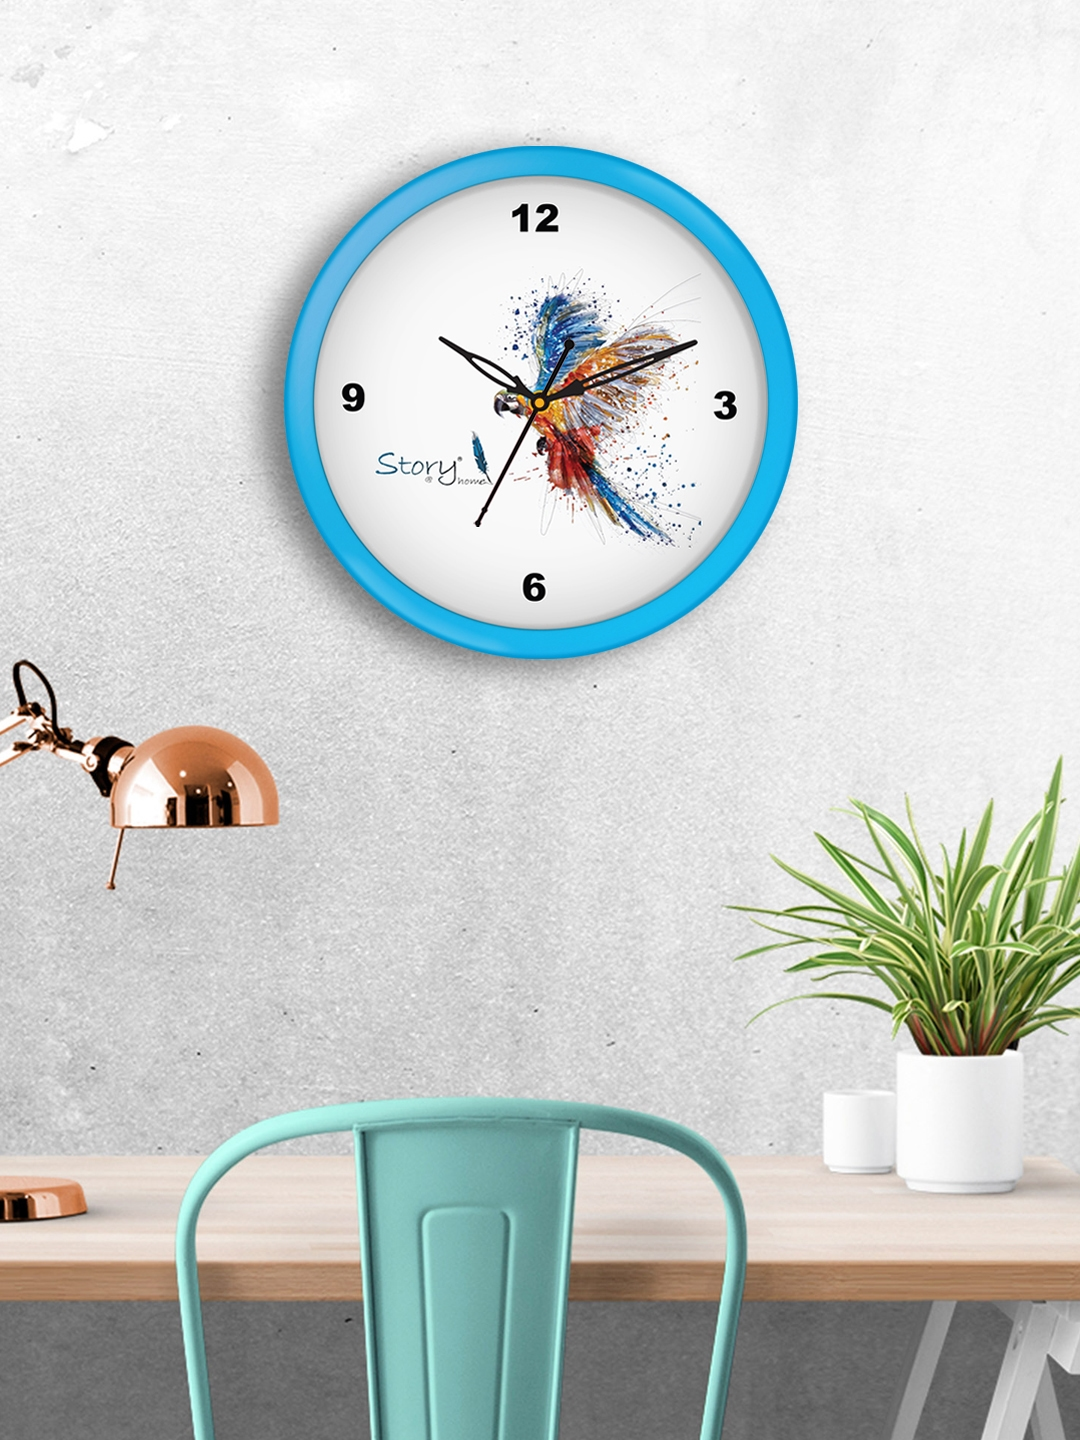 Story@home White Round Printed Analogue Wall Clock 25 cm x 25 cm